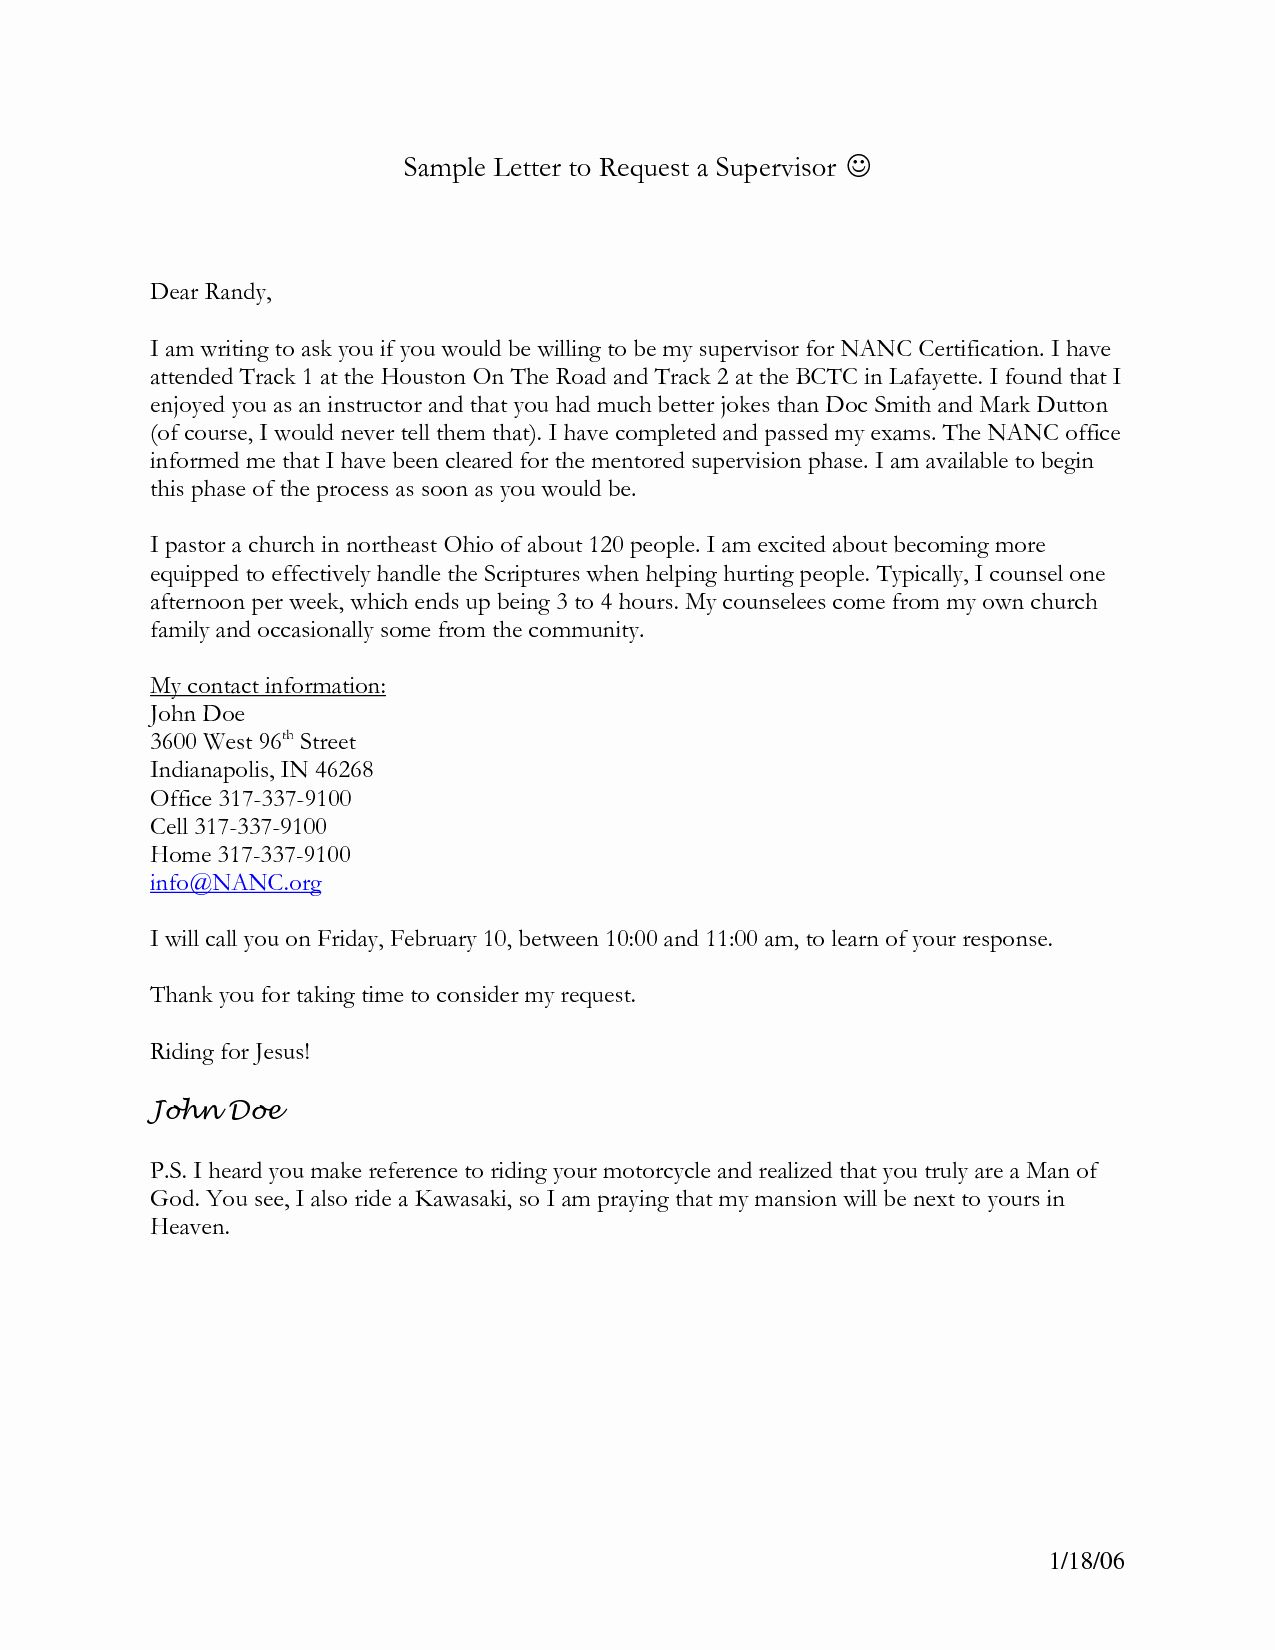 FORMAL LETTERS GIVING AND REQUESTING INFORMATION (With